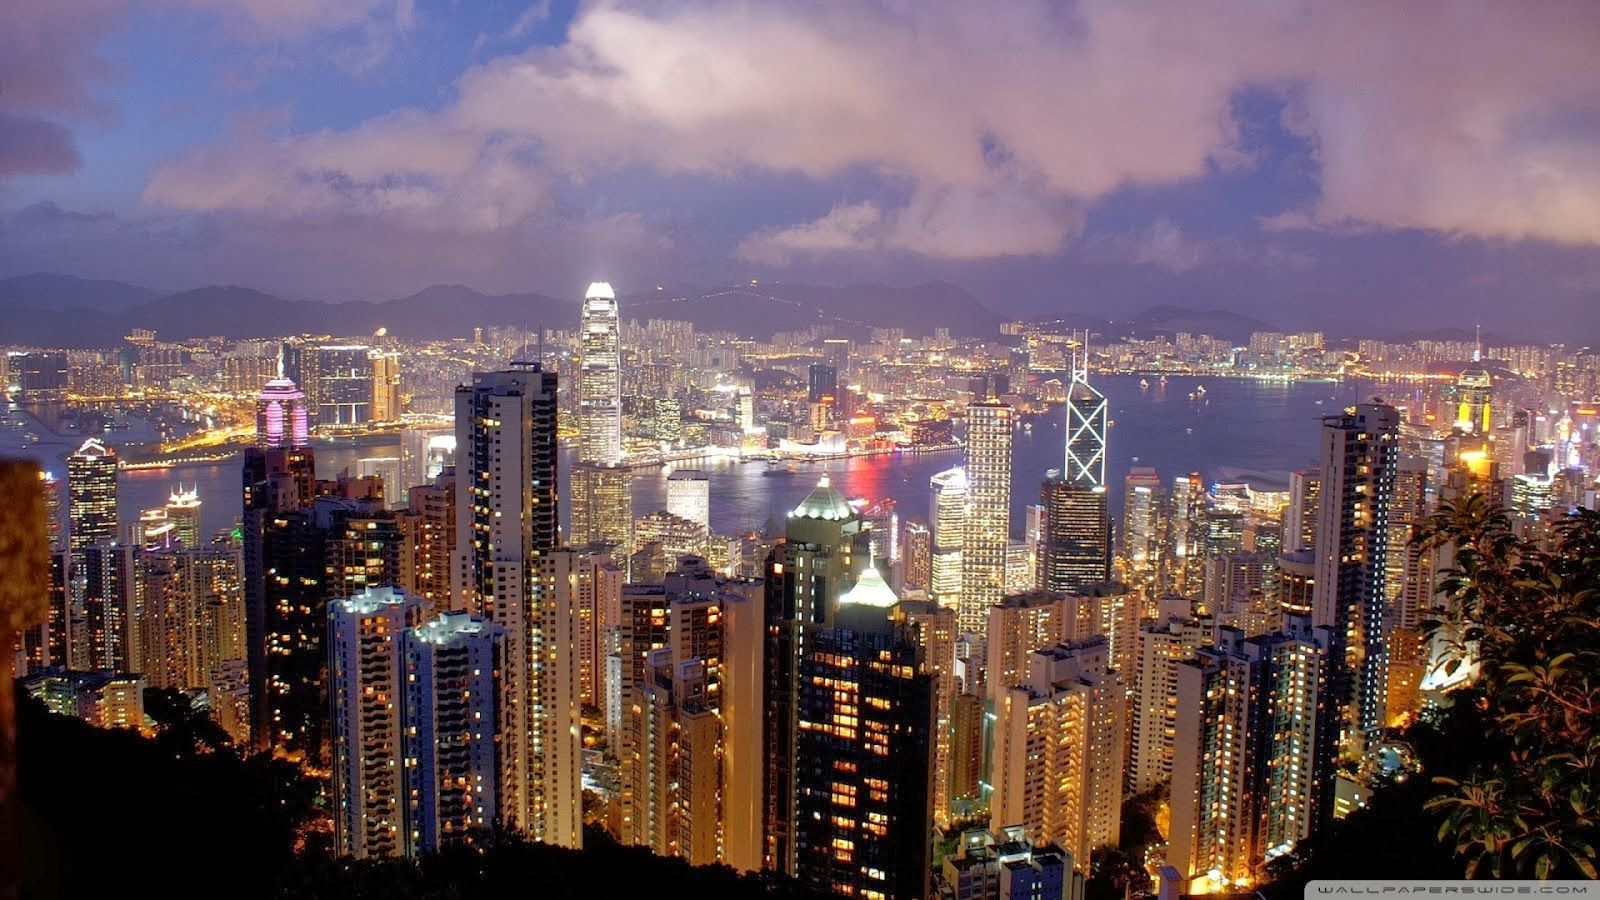 Explore And Share Hd City Wallpapers 1080p City Hd Wallpapers 1080p Hong Kong City Hd Wallpapers 1080p Victoria Harbour City Wallpaper Hong Kong Night